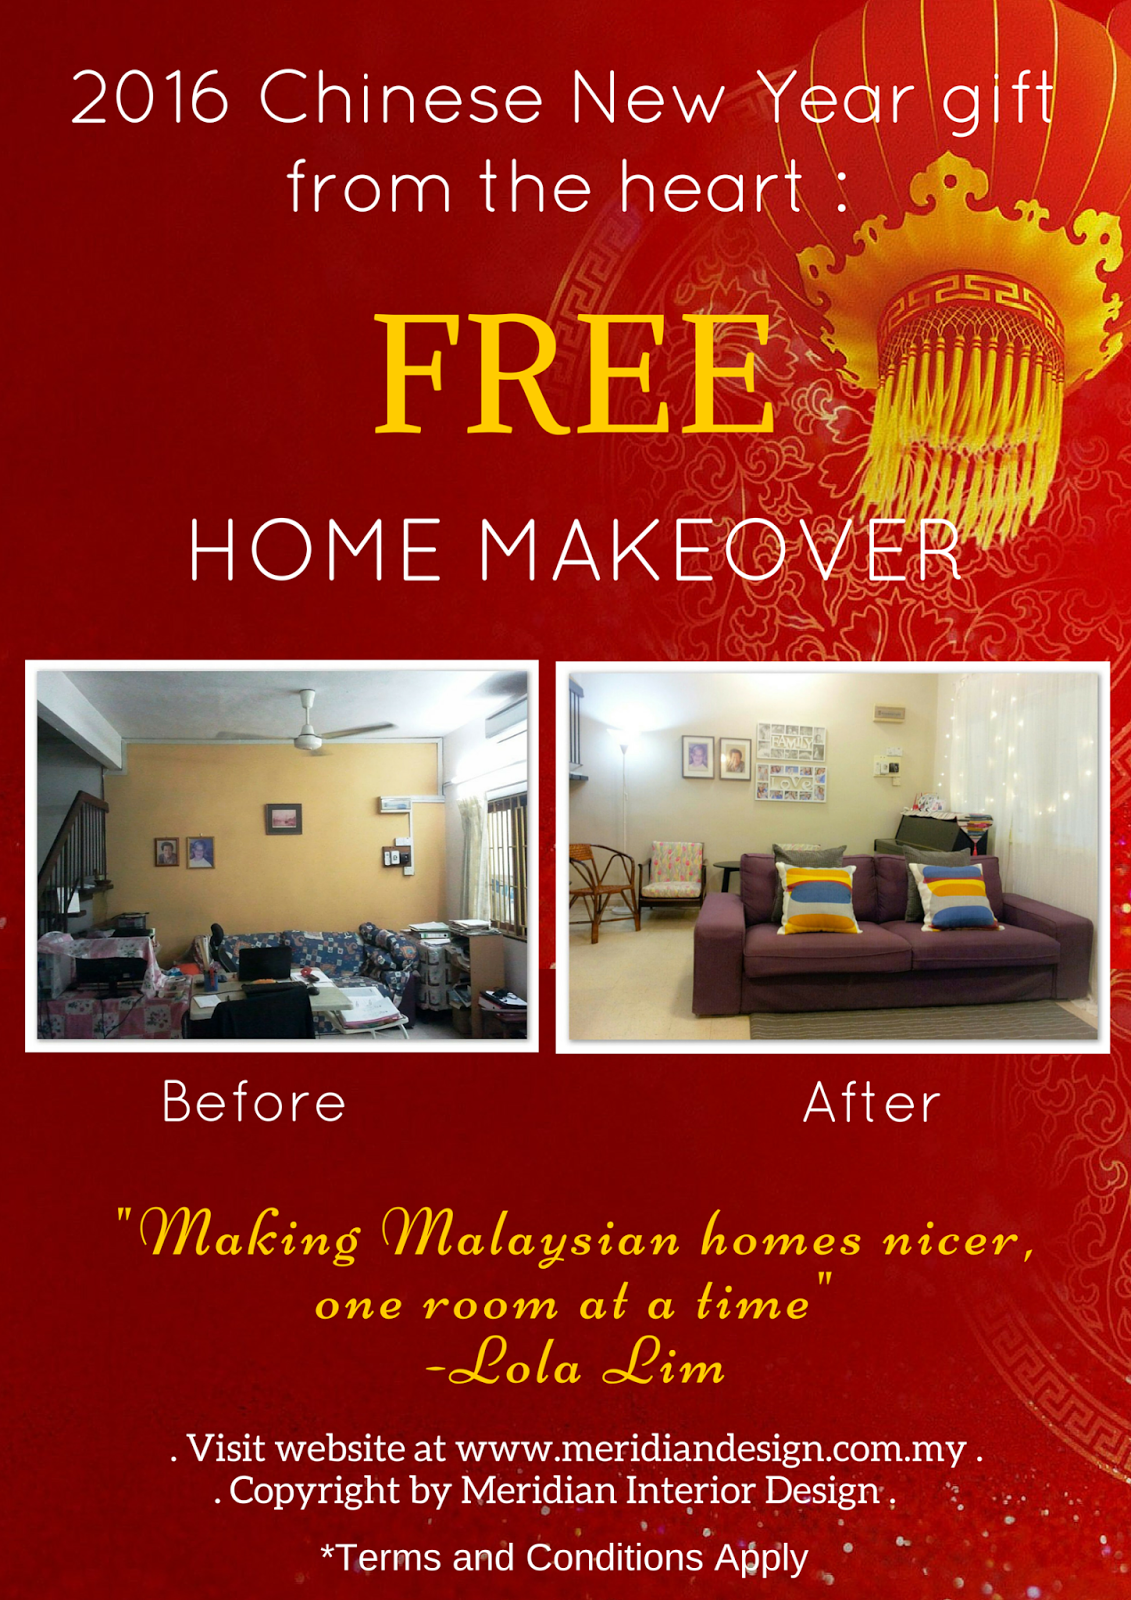 Press Release Chinese New Year Free Home Makeover 2016